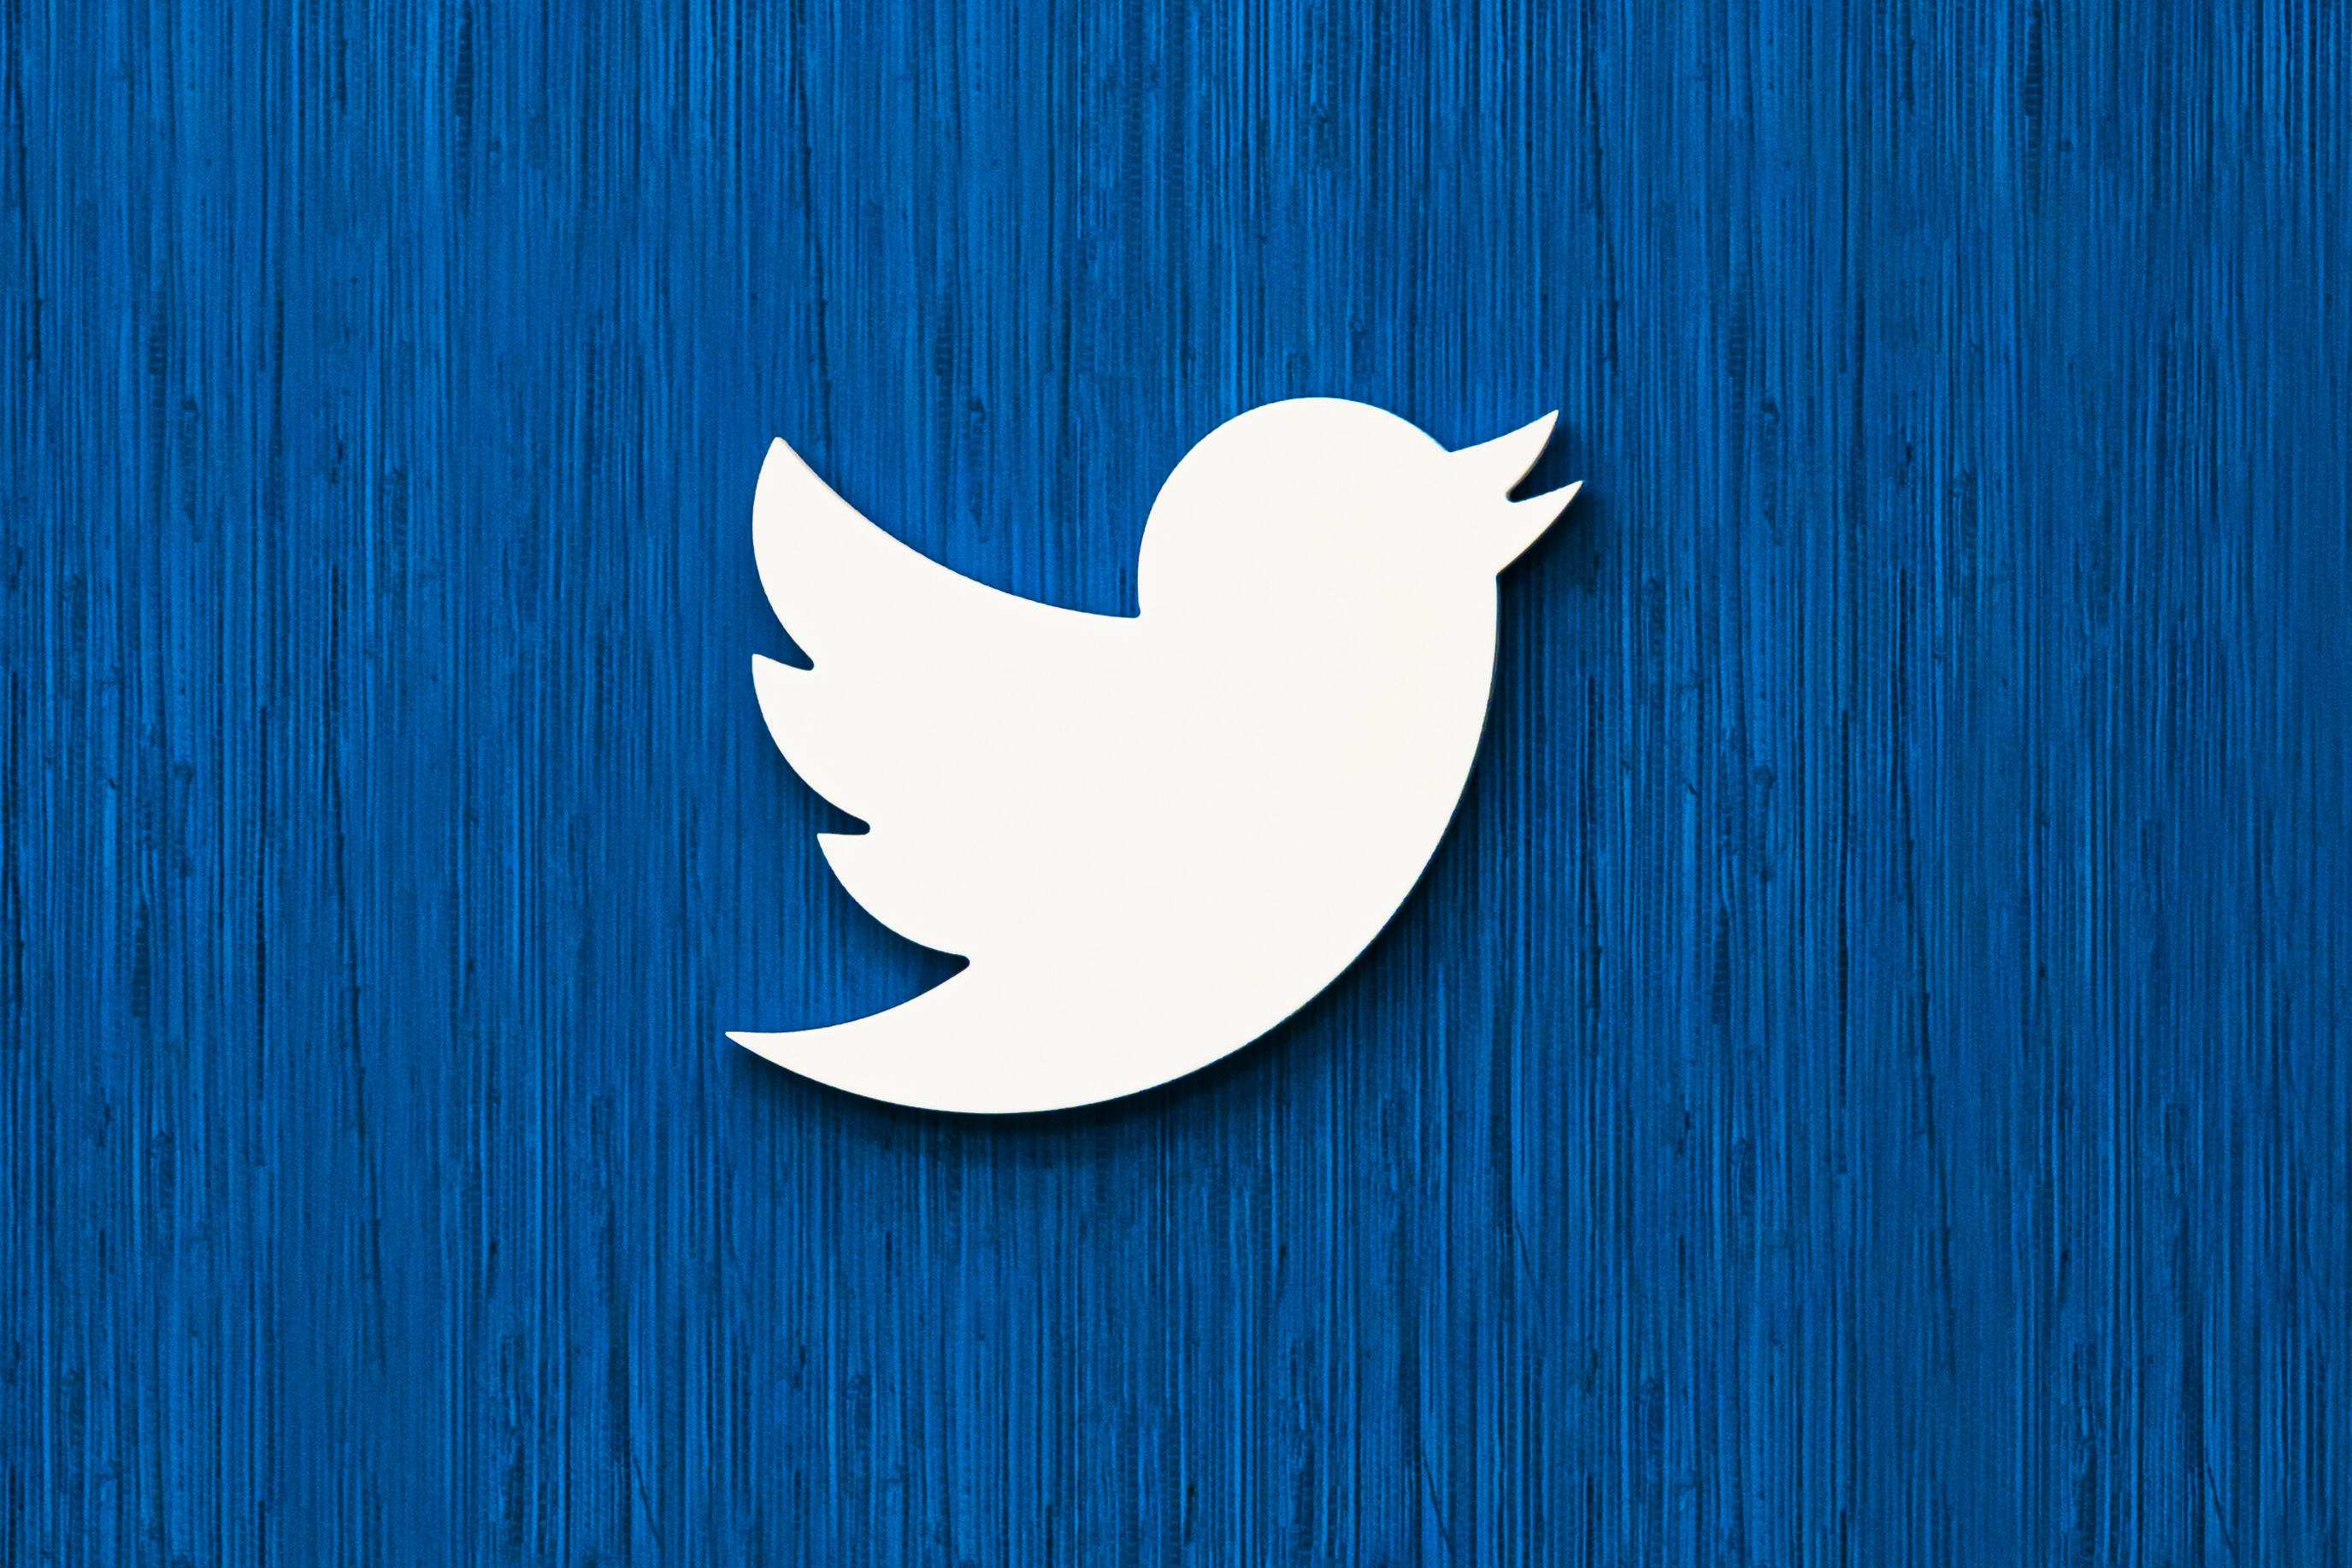 Twitter's white bird logo hanging on a blue wall.